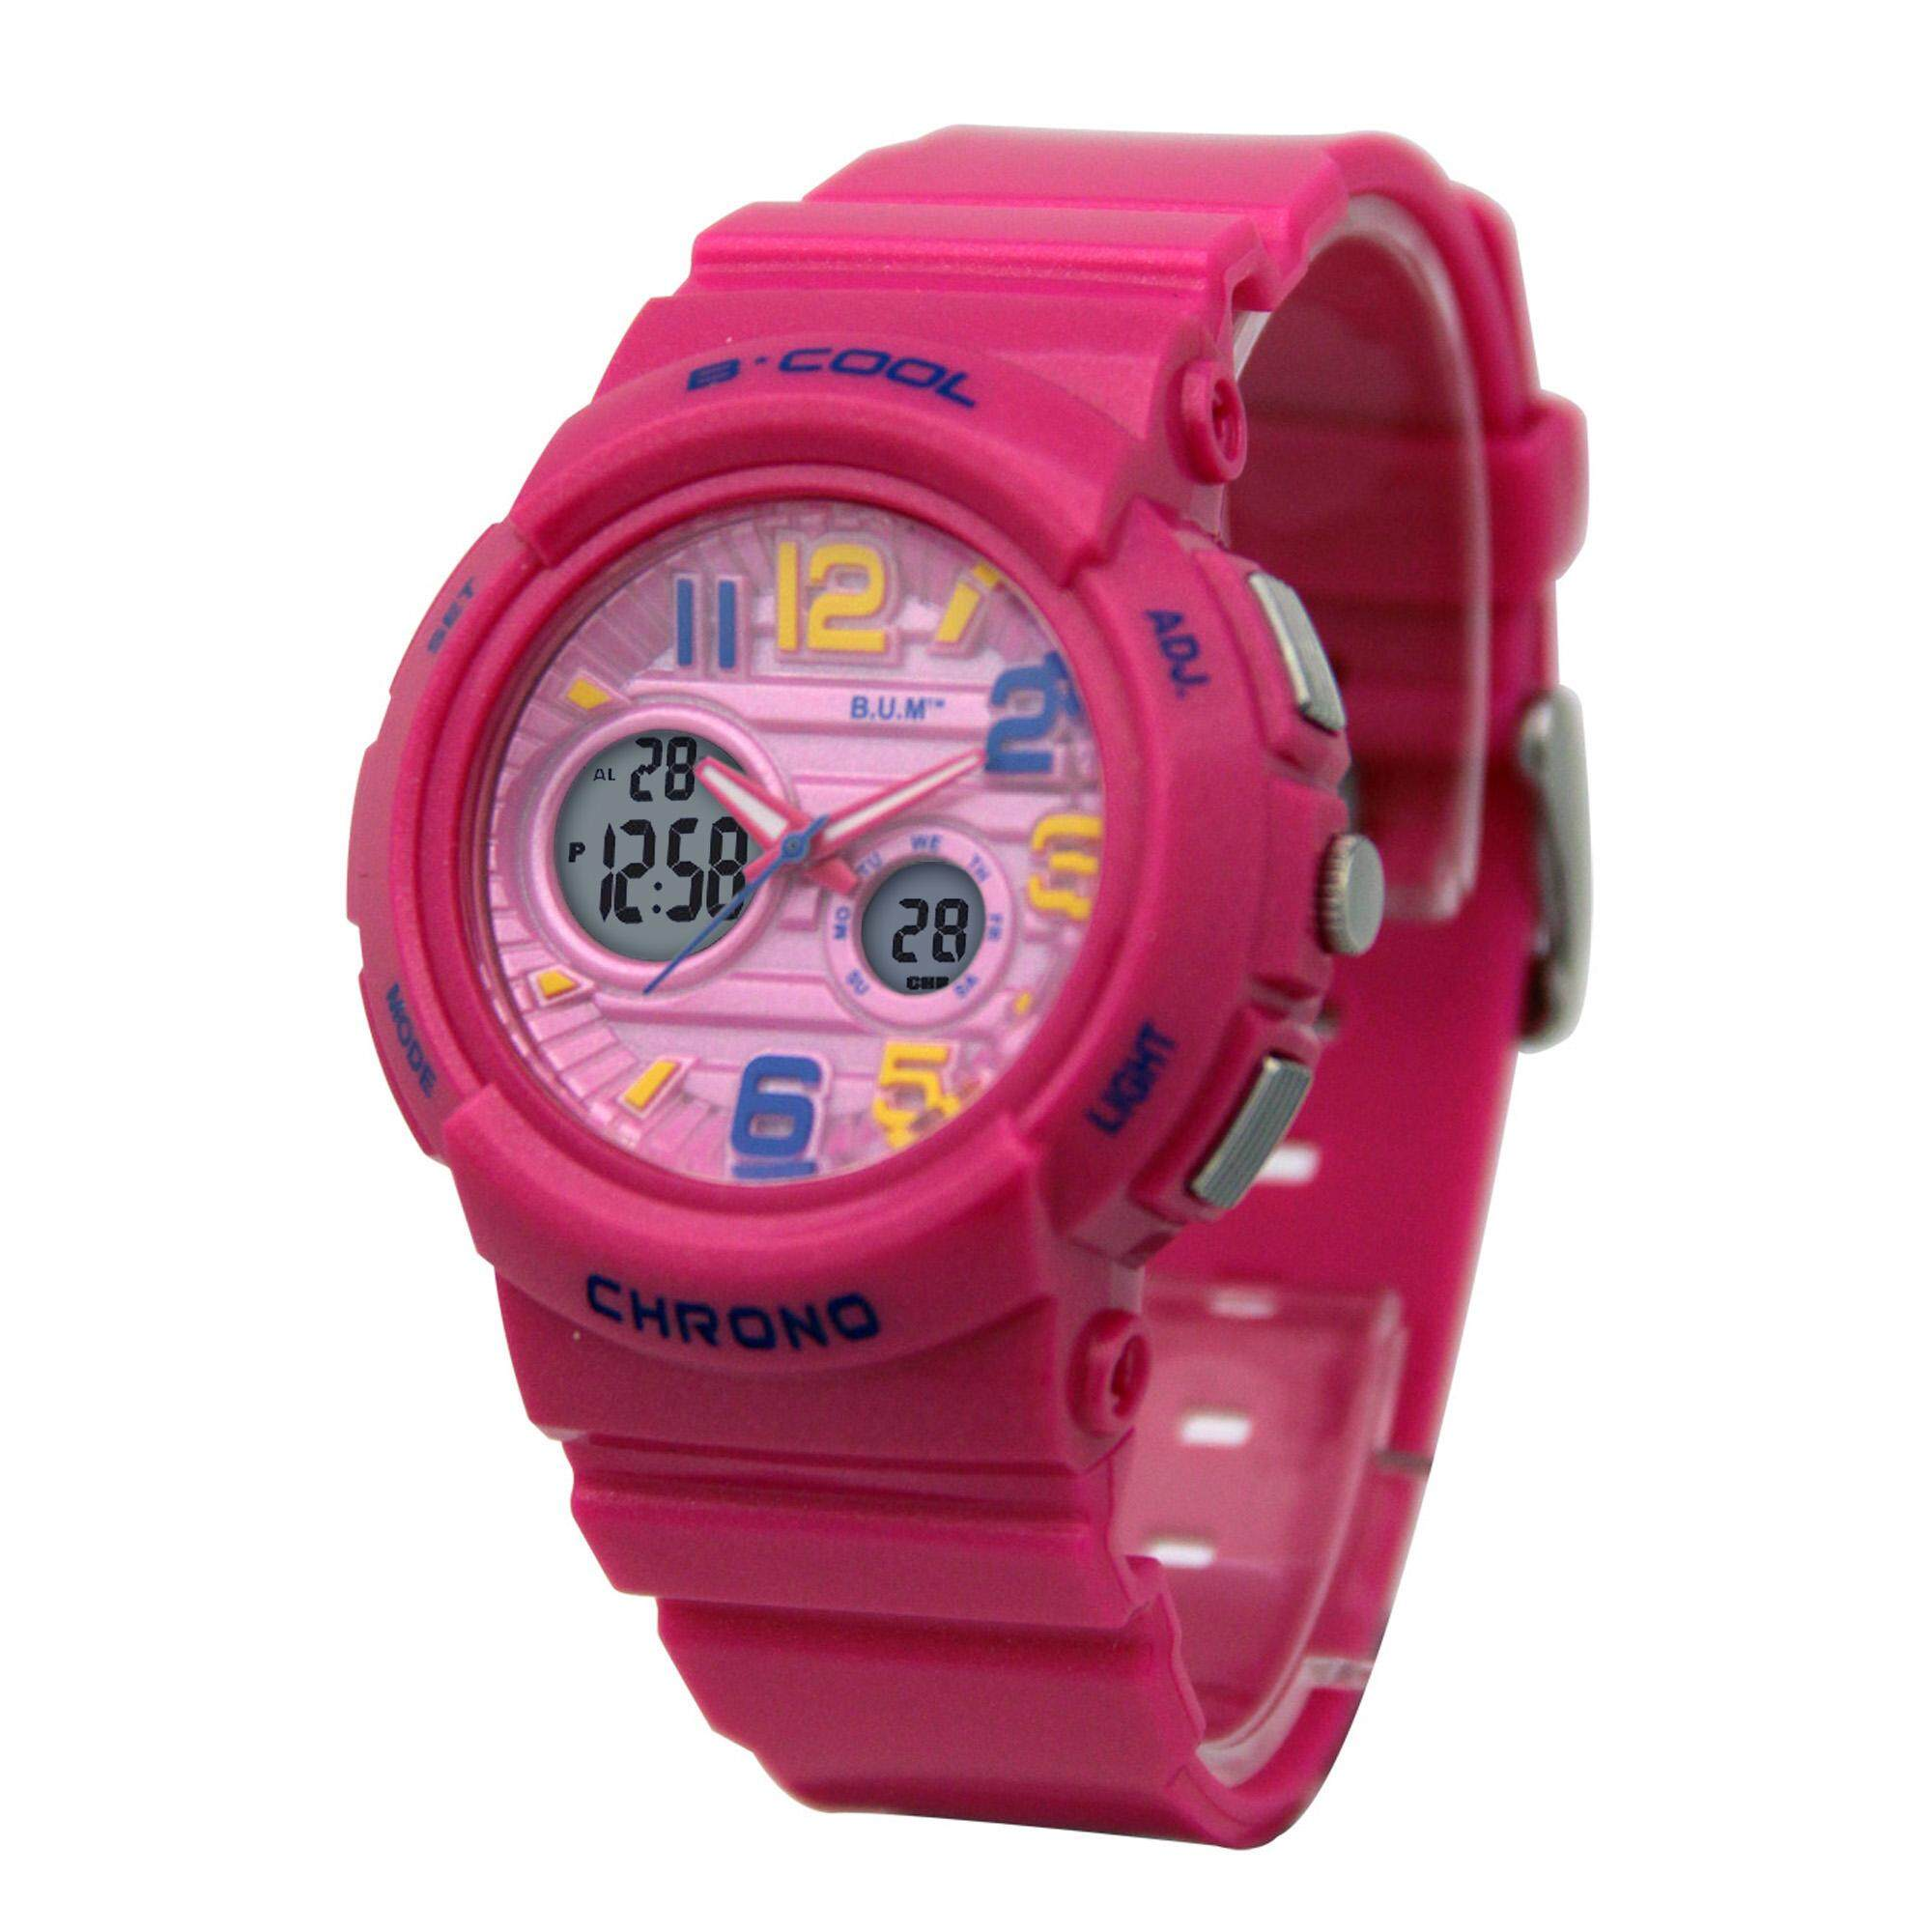 silicone watches wrist fashion colorful promotional watch